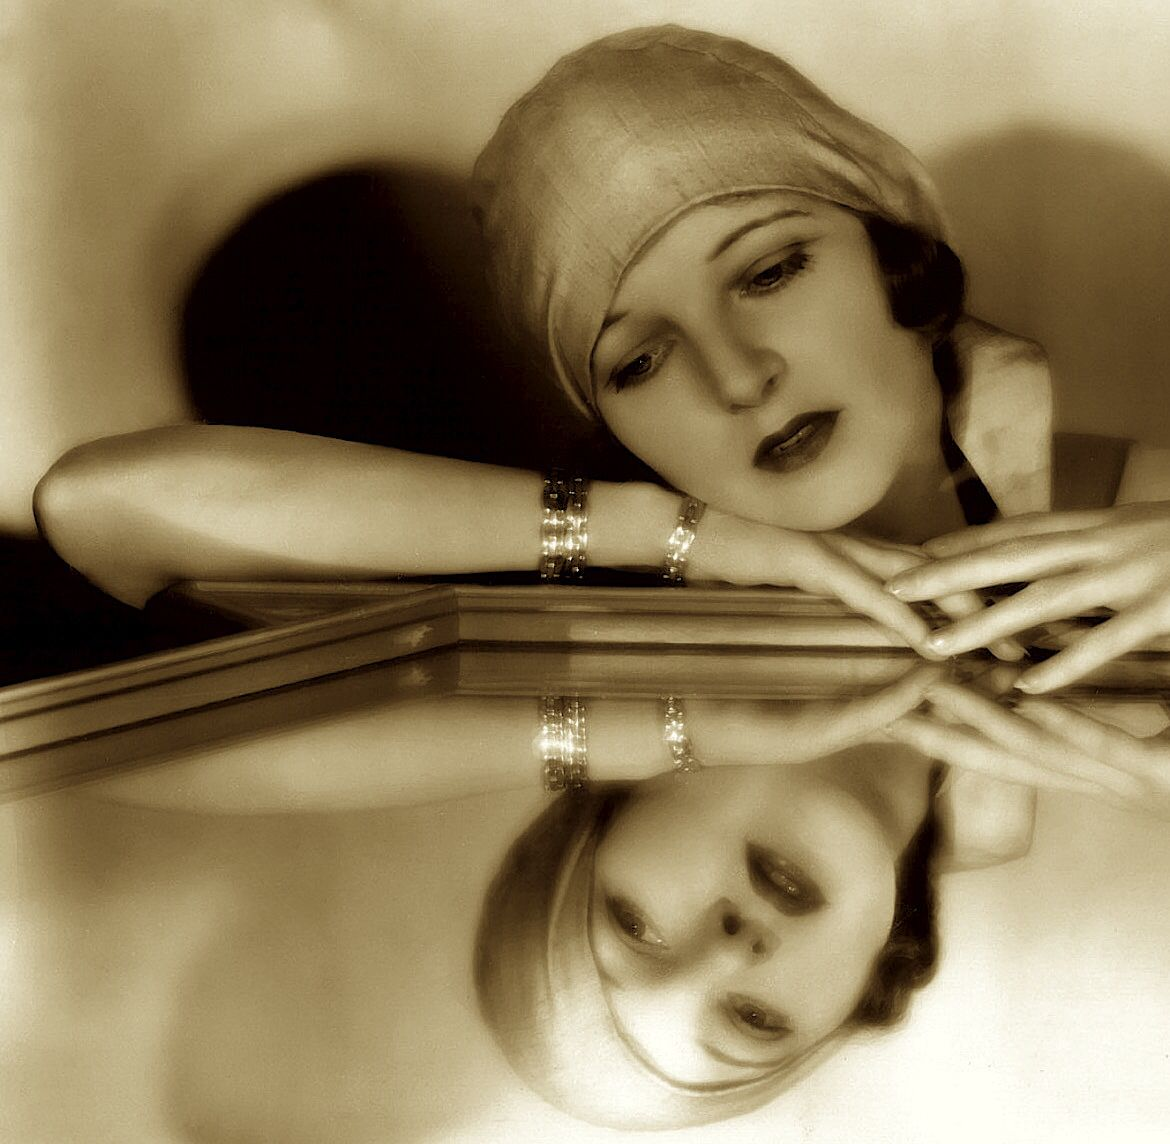 Connie griffith mirror mirror pinterest silent film gay and